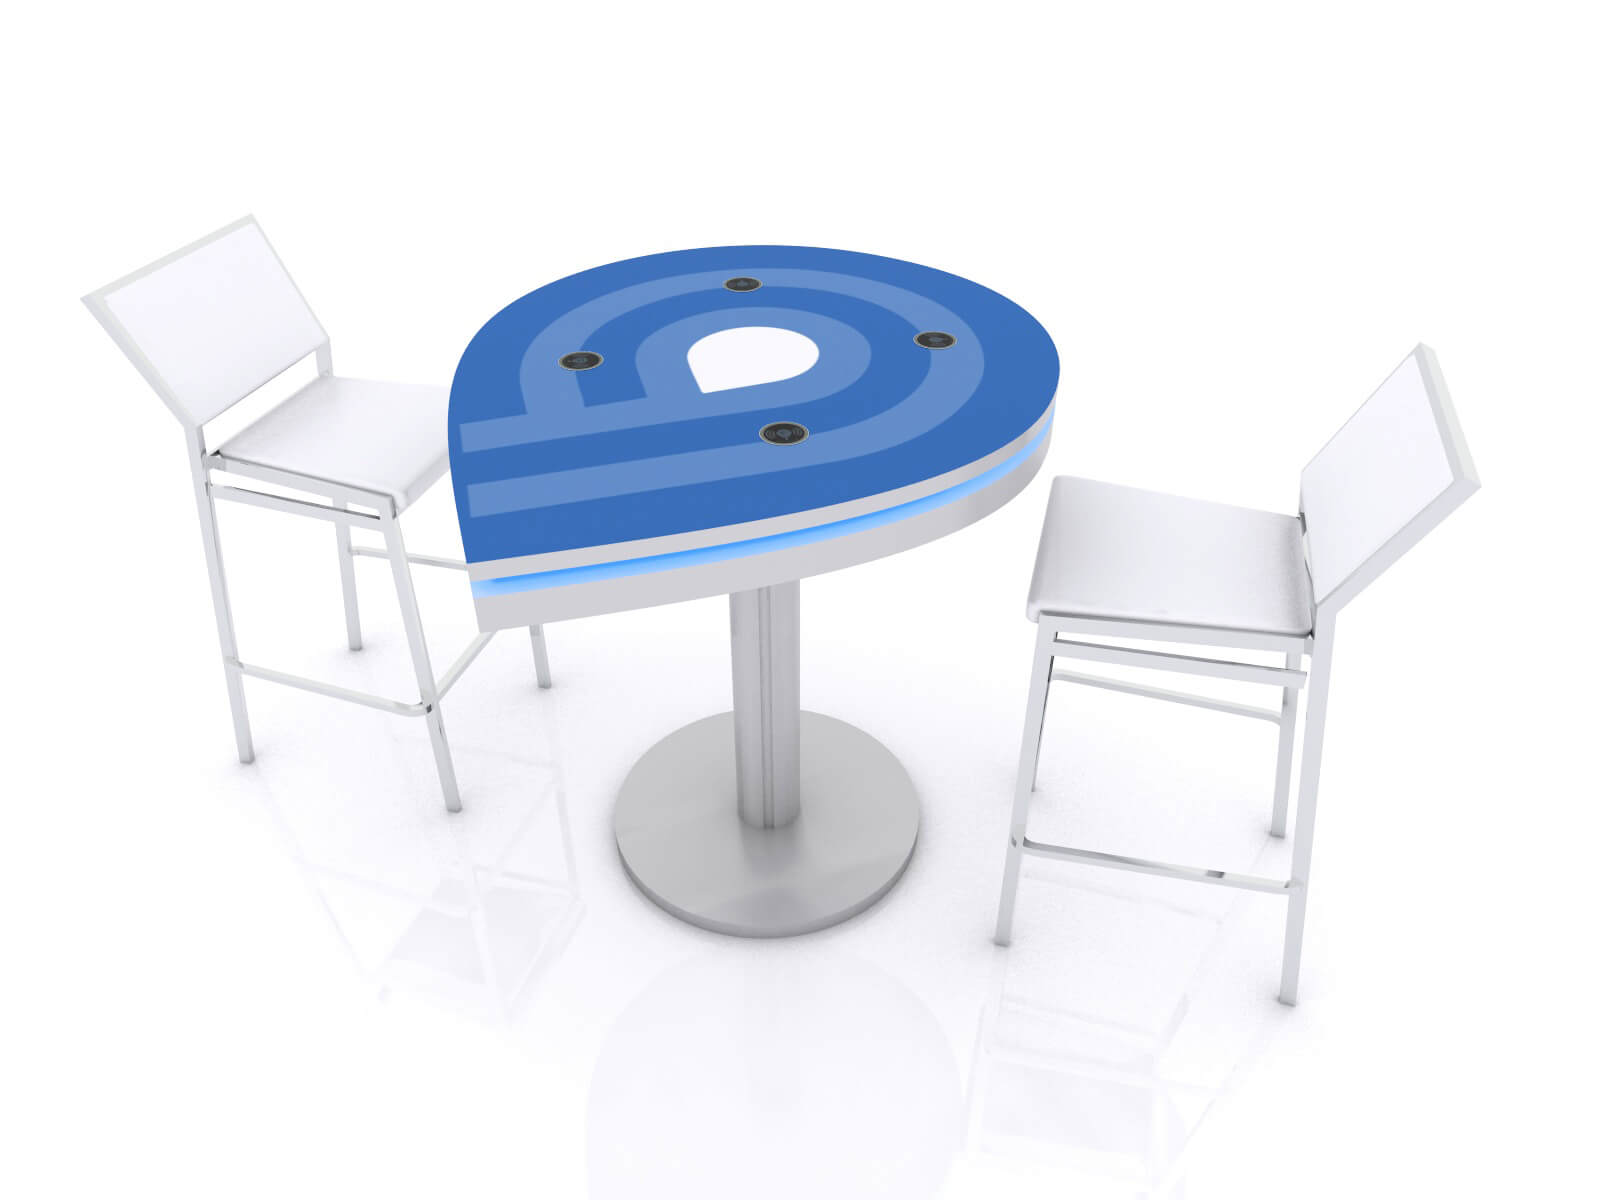 MOD-1457 Trade Show Wireless Charging Station - Image 1